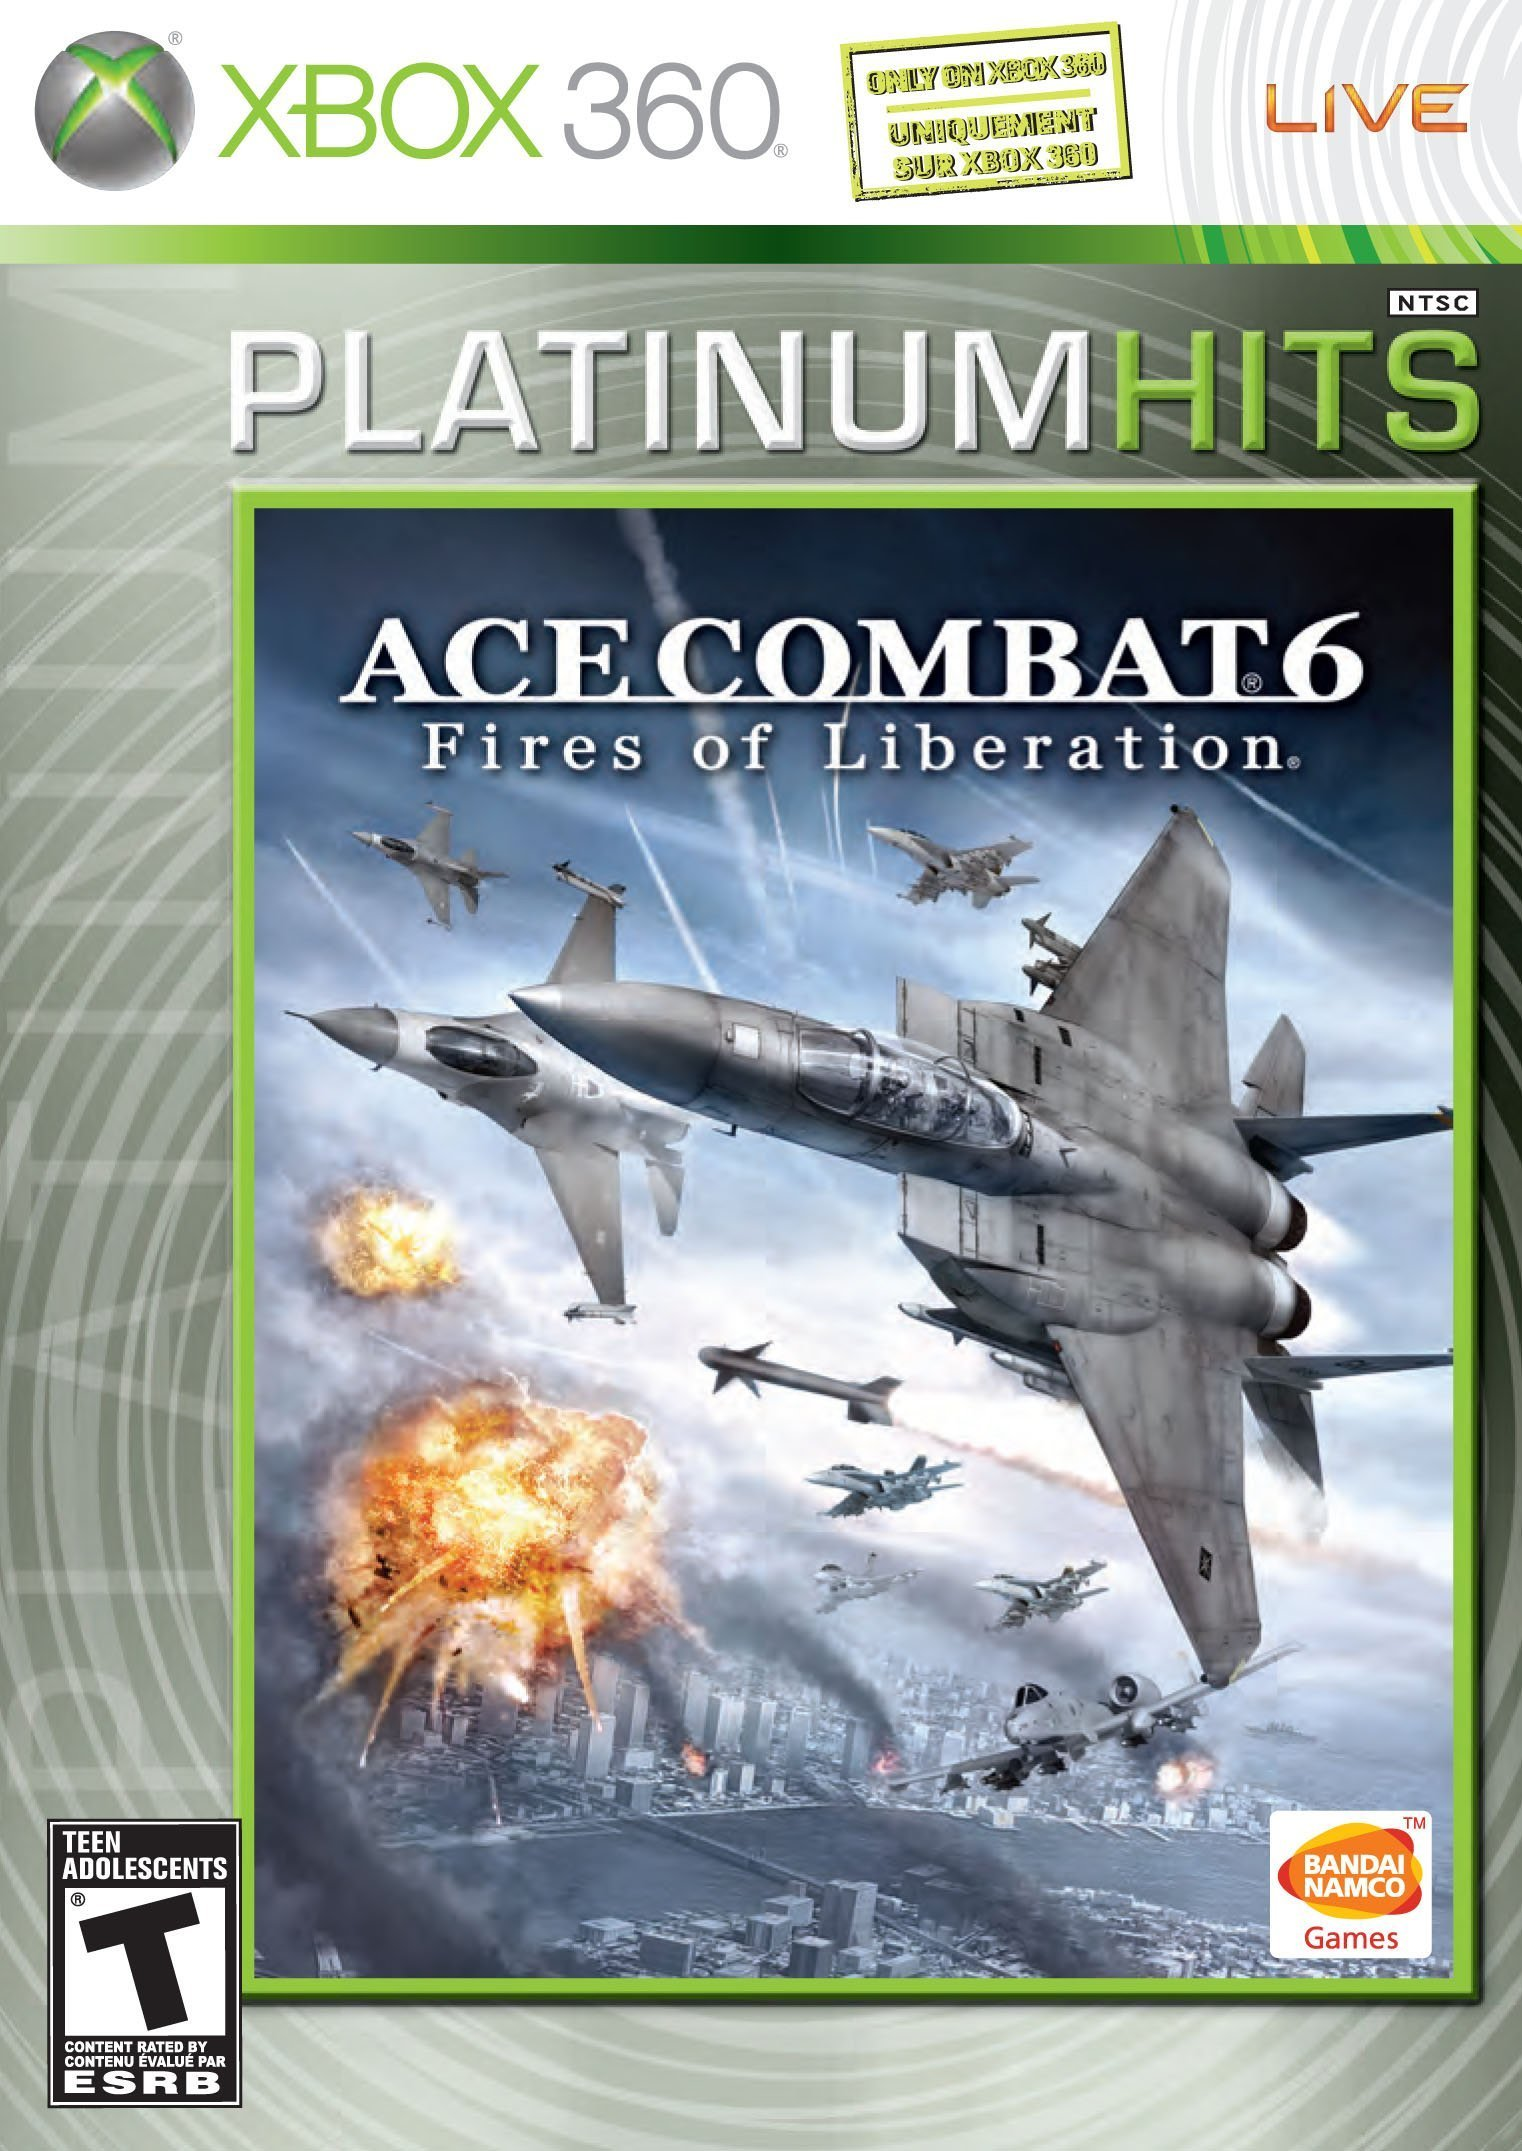 Ace Combat 6: Fires of Liberation (Platinum Hits) by Bandai (Image #1)